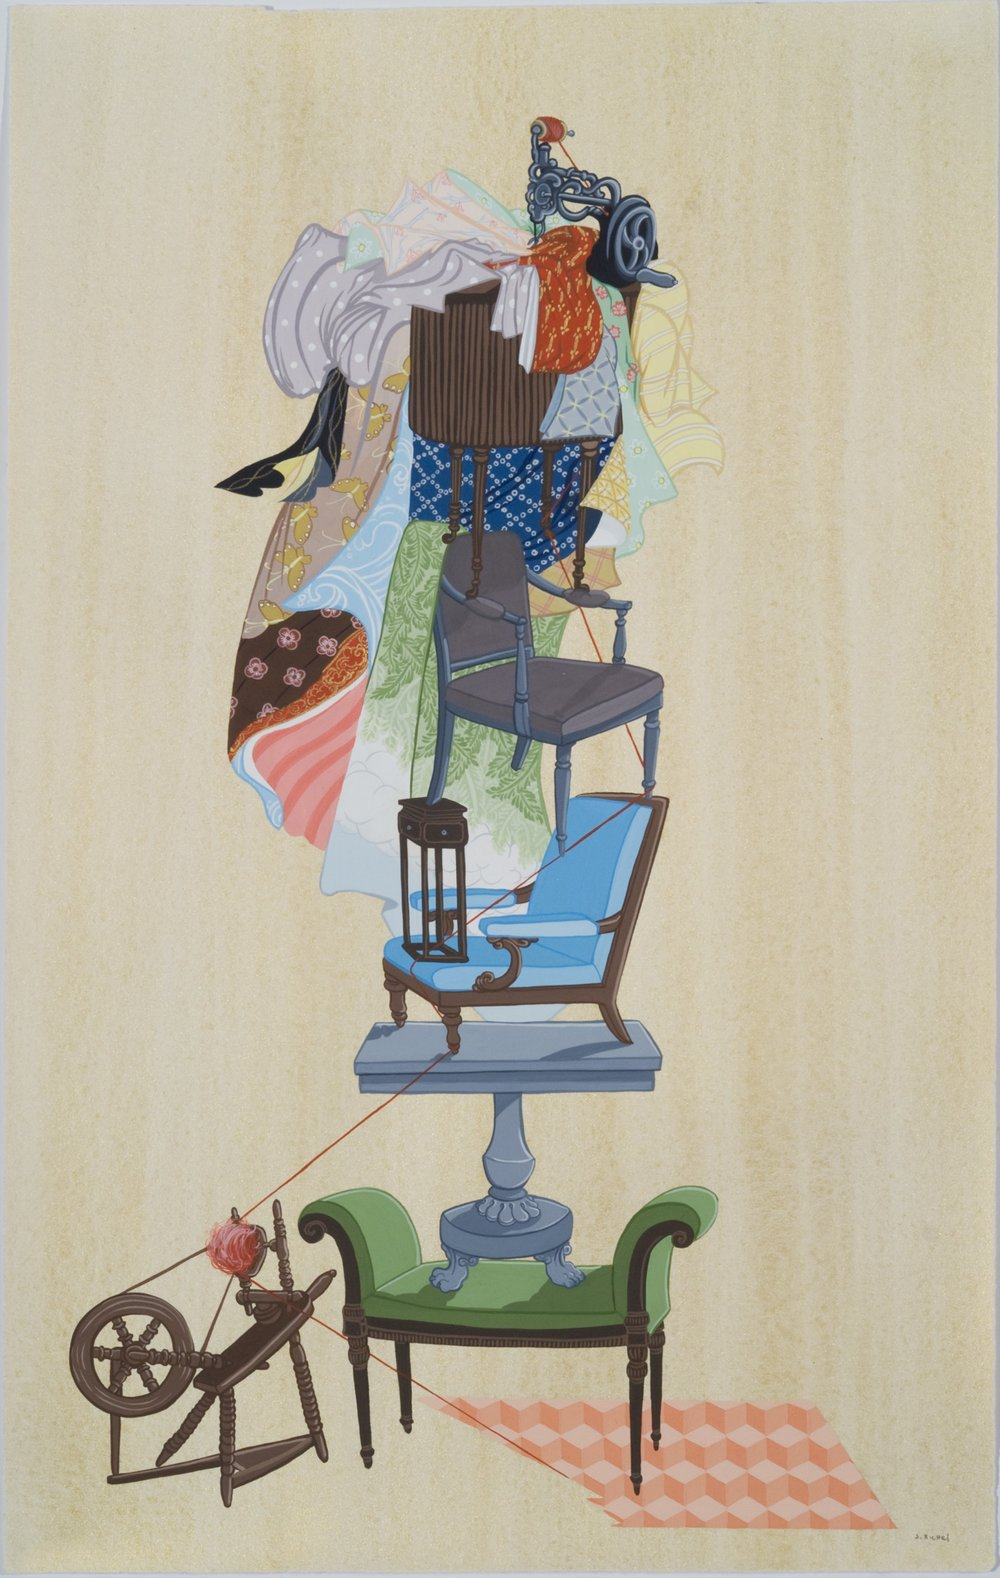 'The Cover Up' (2012, gouache on paper, 19 x 12 inches) by Justin Richel